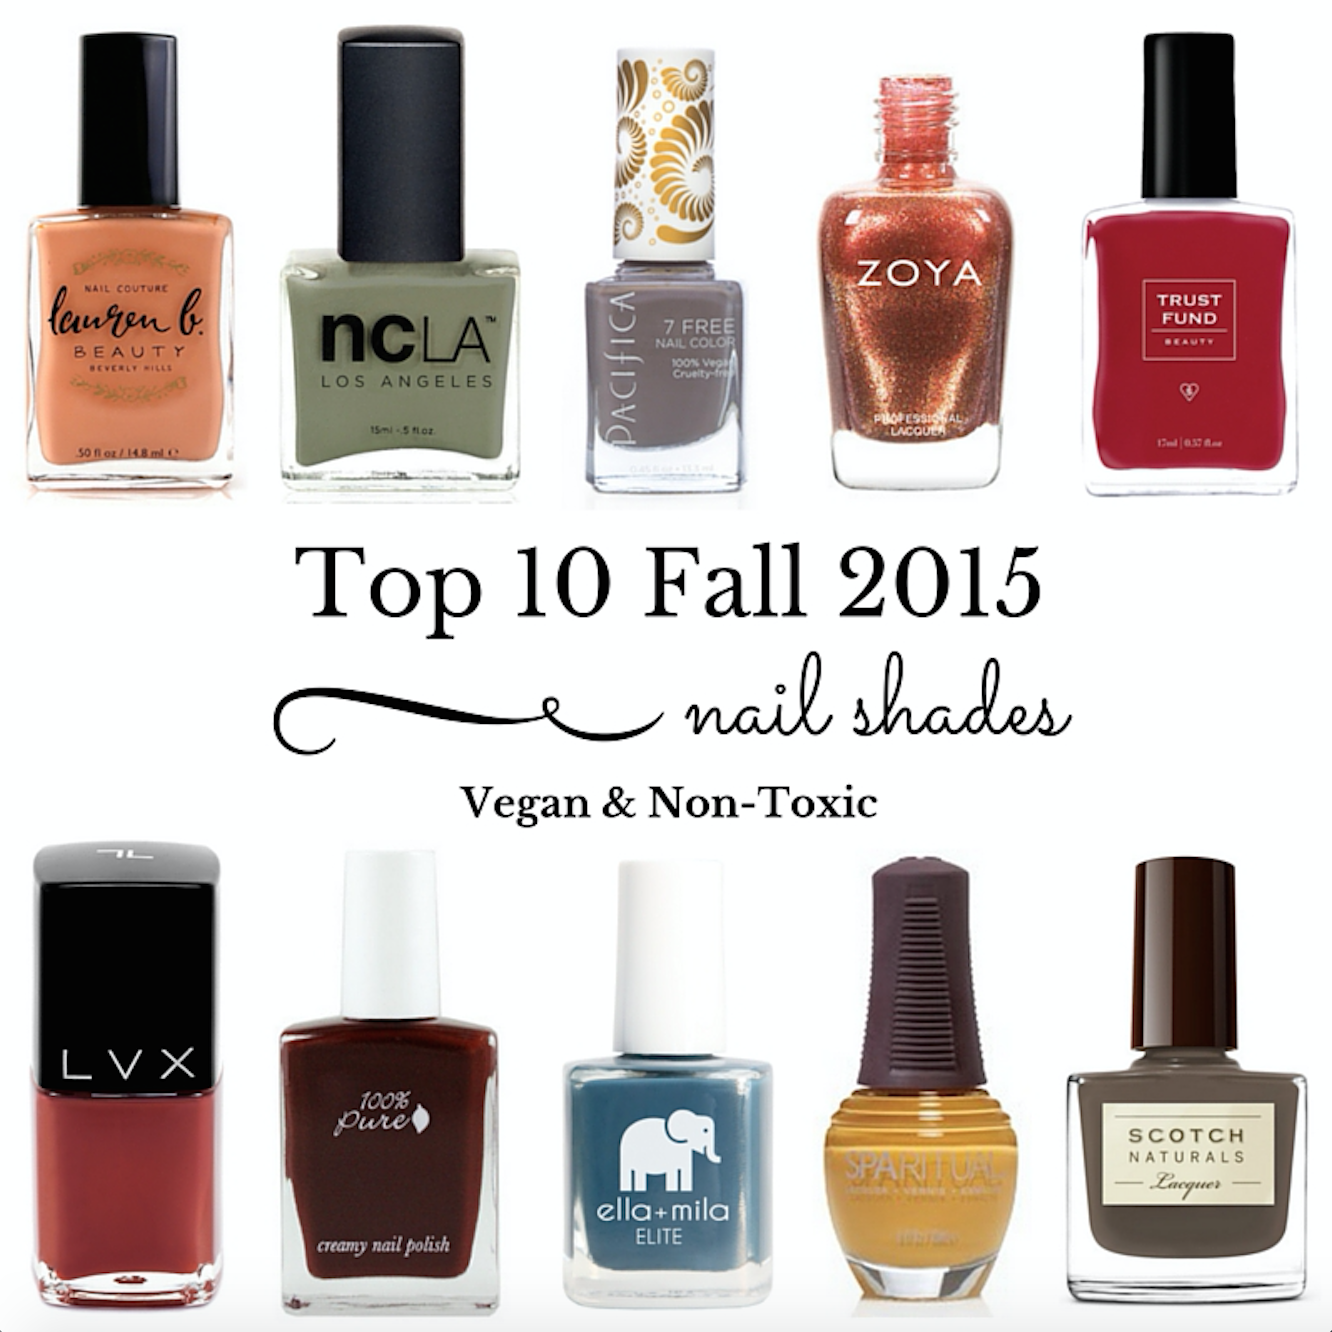 Top 10 Fall 2015 Nail Shades {Vegan & Non-Toxic} - Vegan Beauty ...